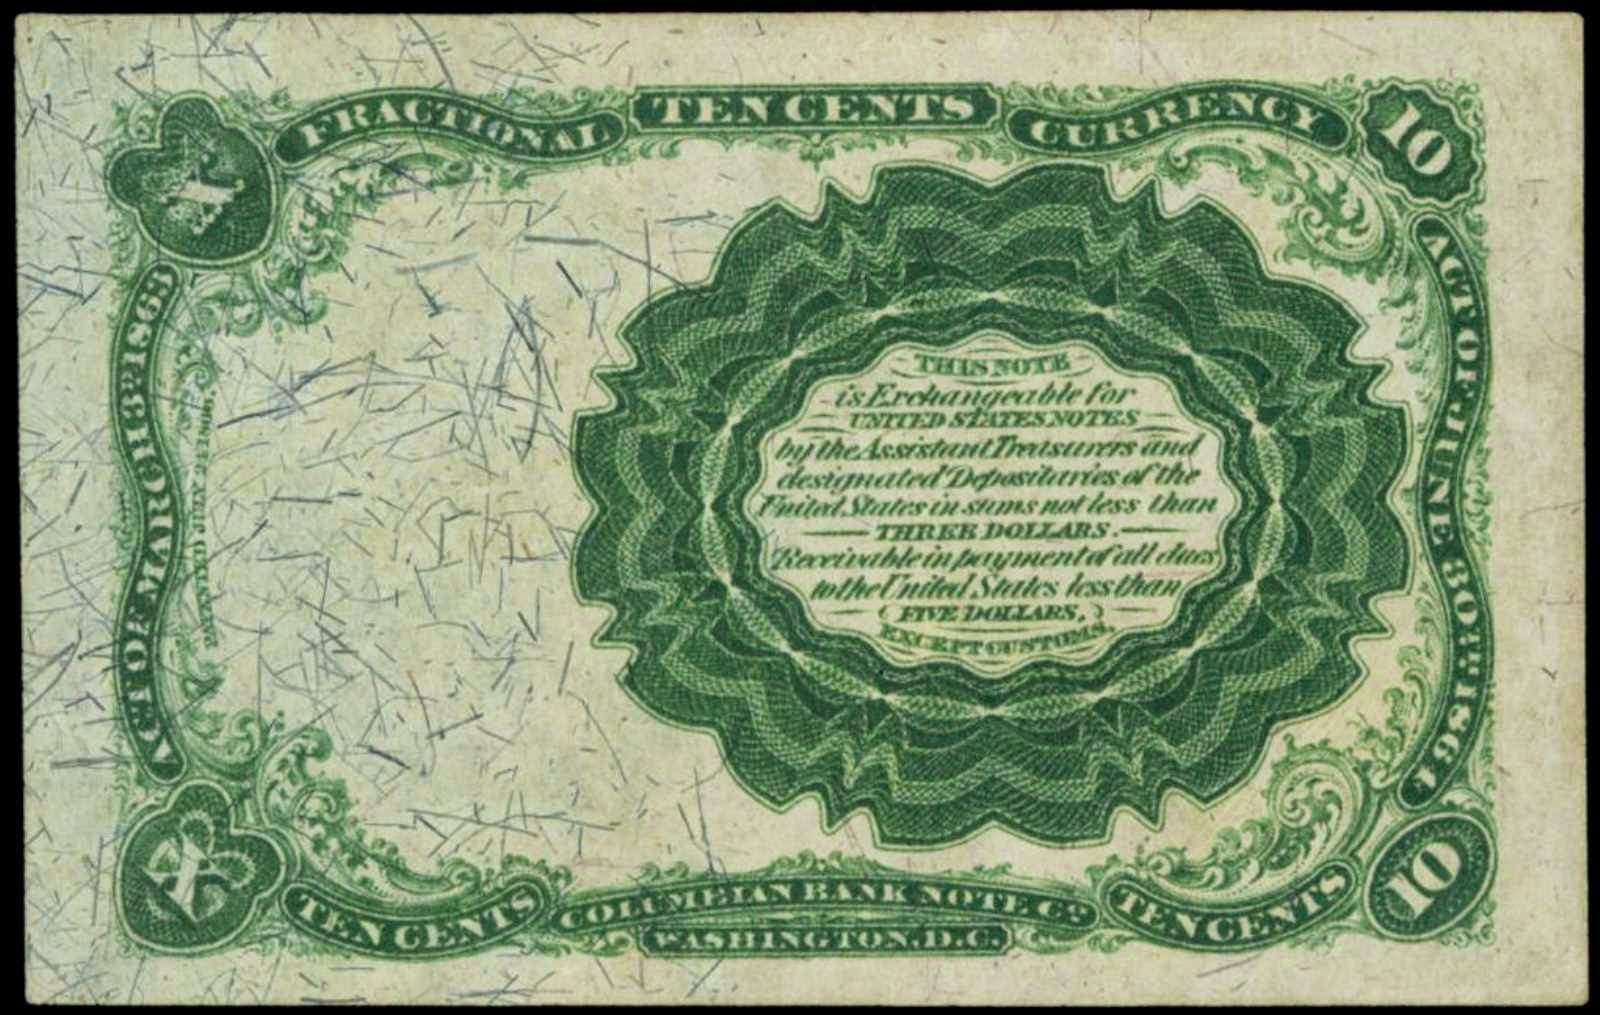 1874 Ten Cents Fractional Currency